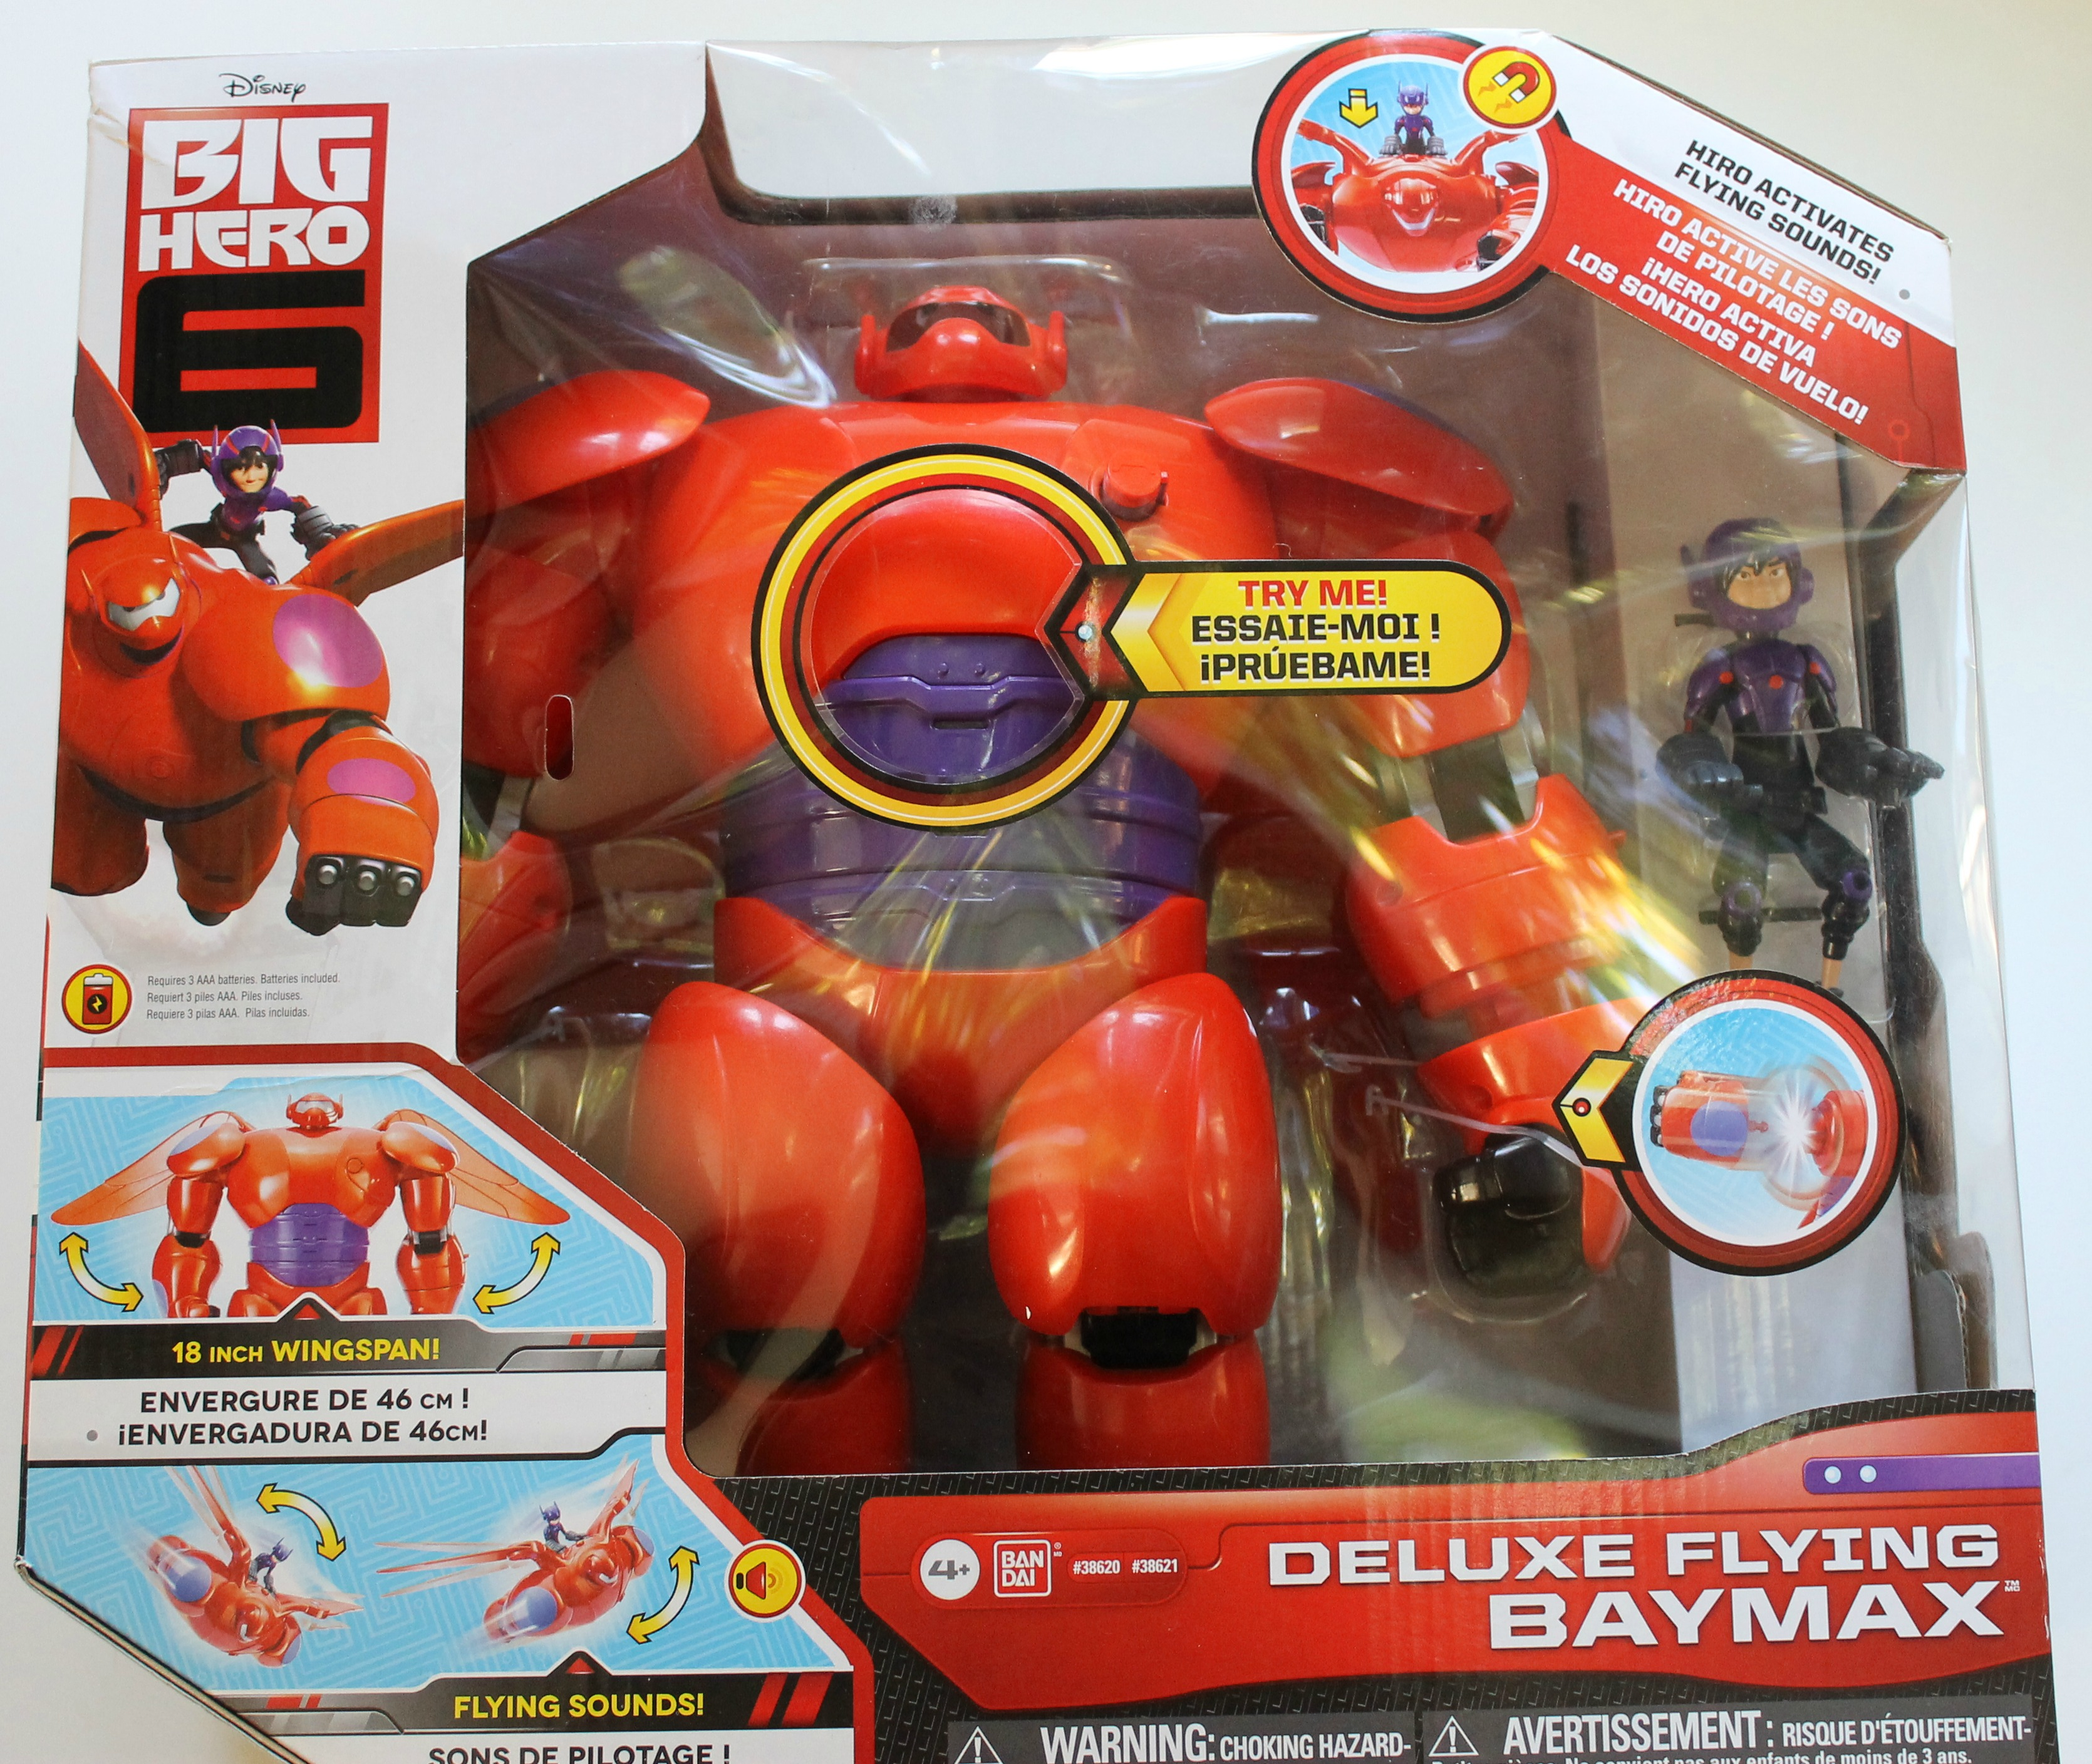 Deluxe-Flying-Baymax-Big-Hero-6